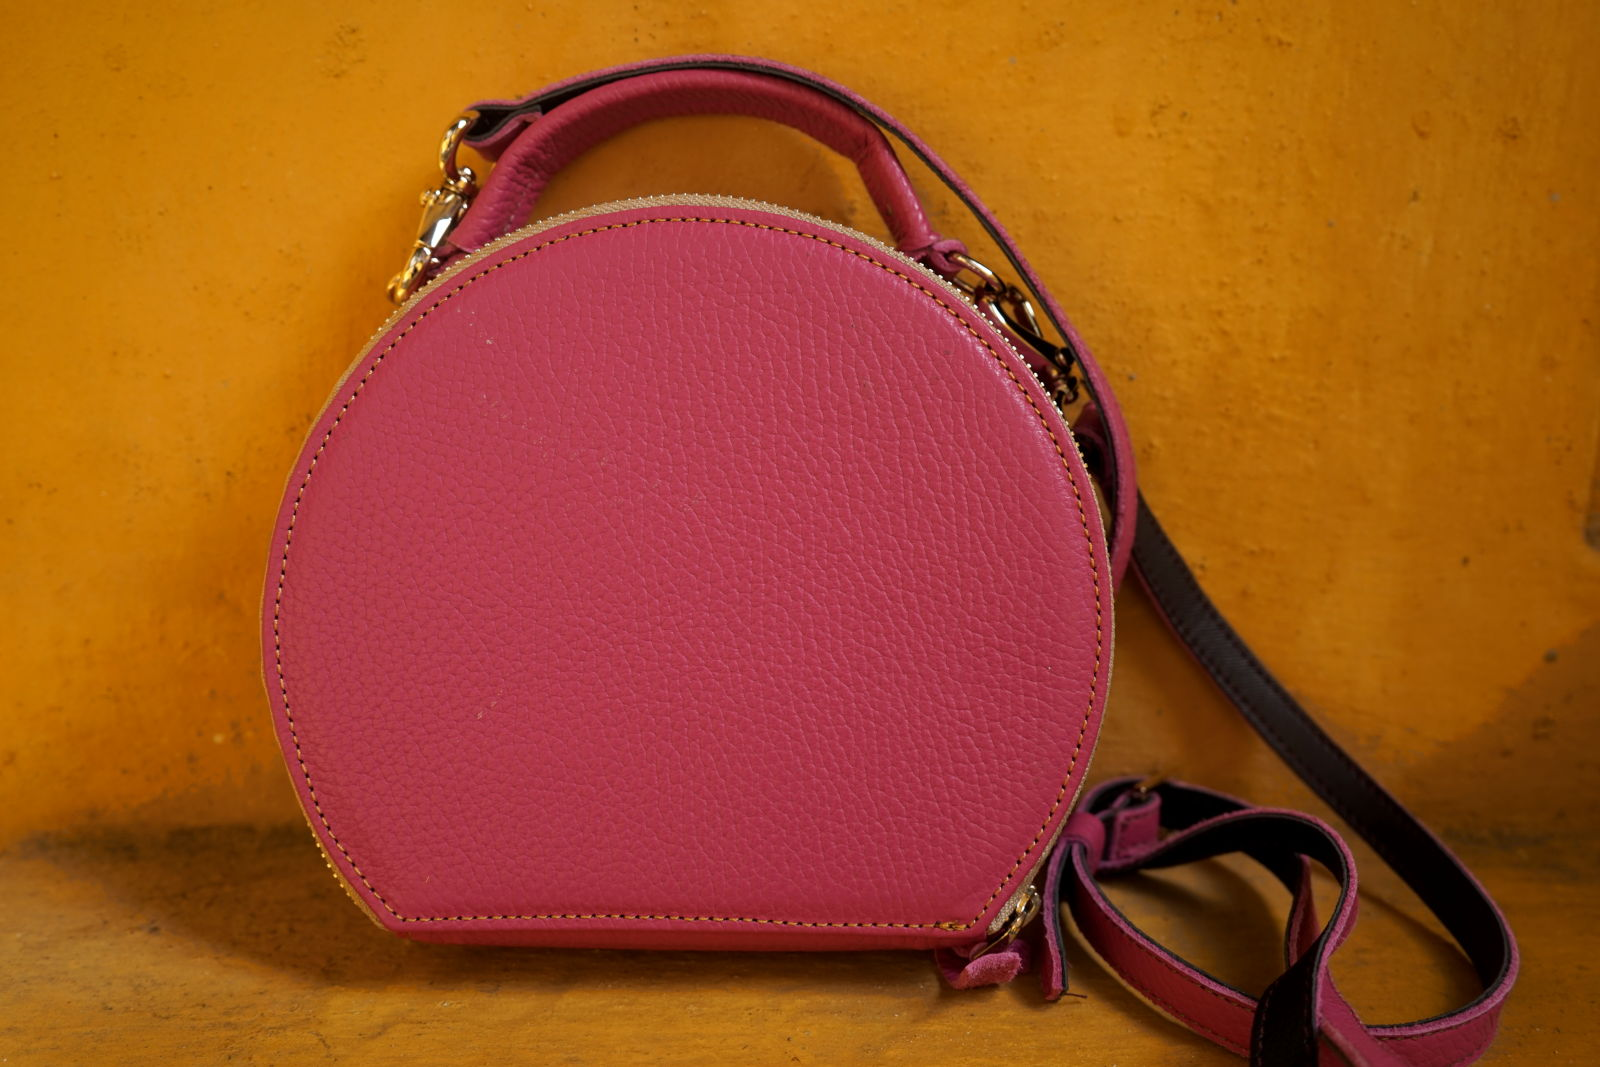 Hoi An Real Leather - Da Bao Real Leather: Pink round purse made of cow leather